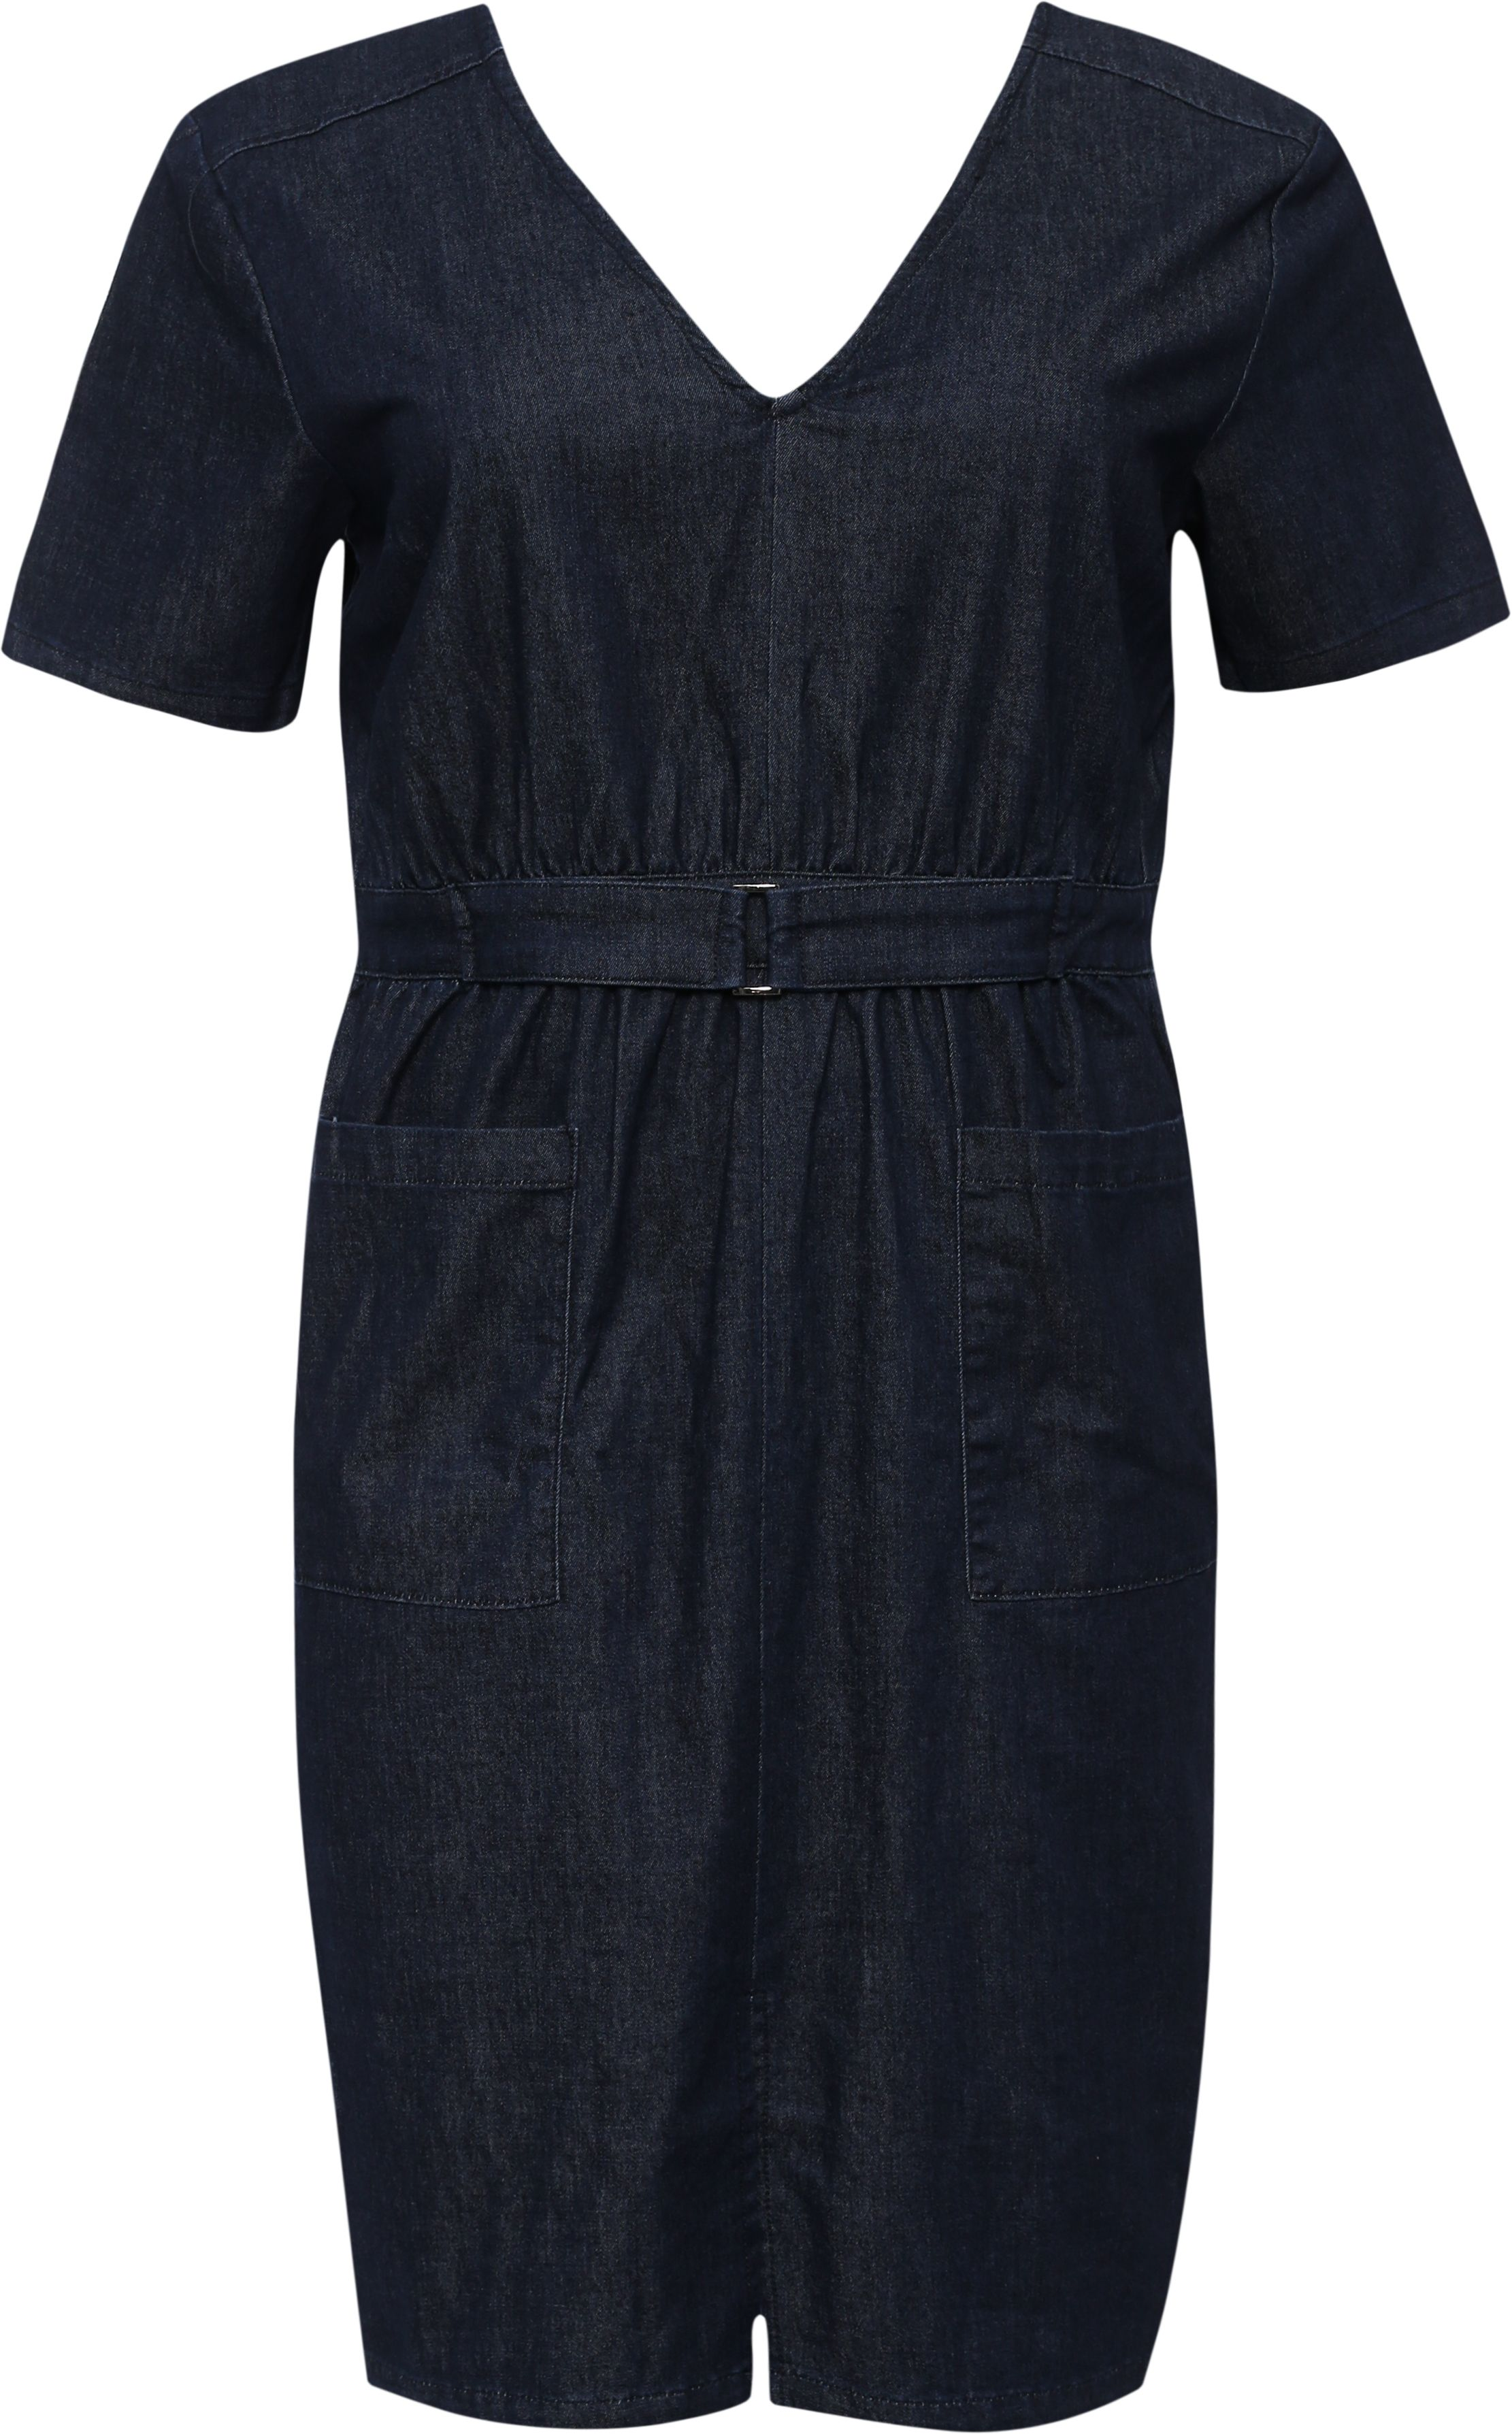 Denim shirt dress house of fraser